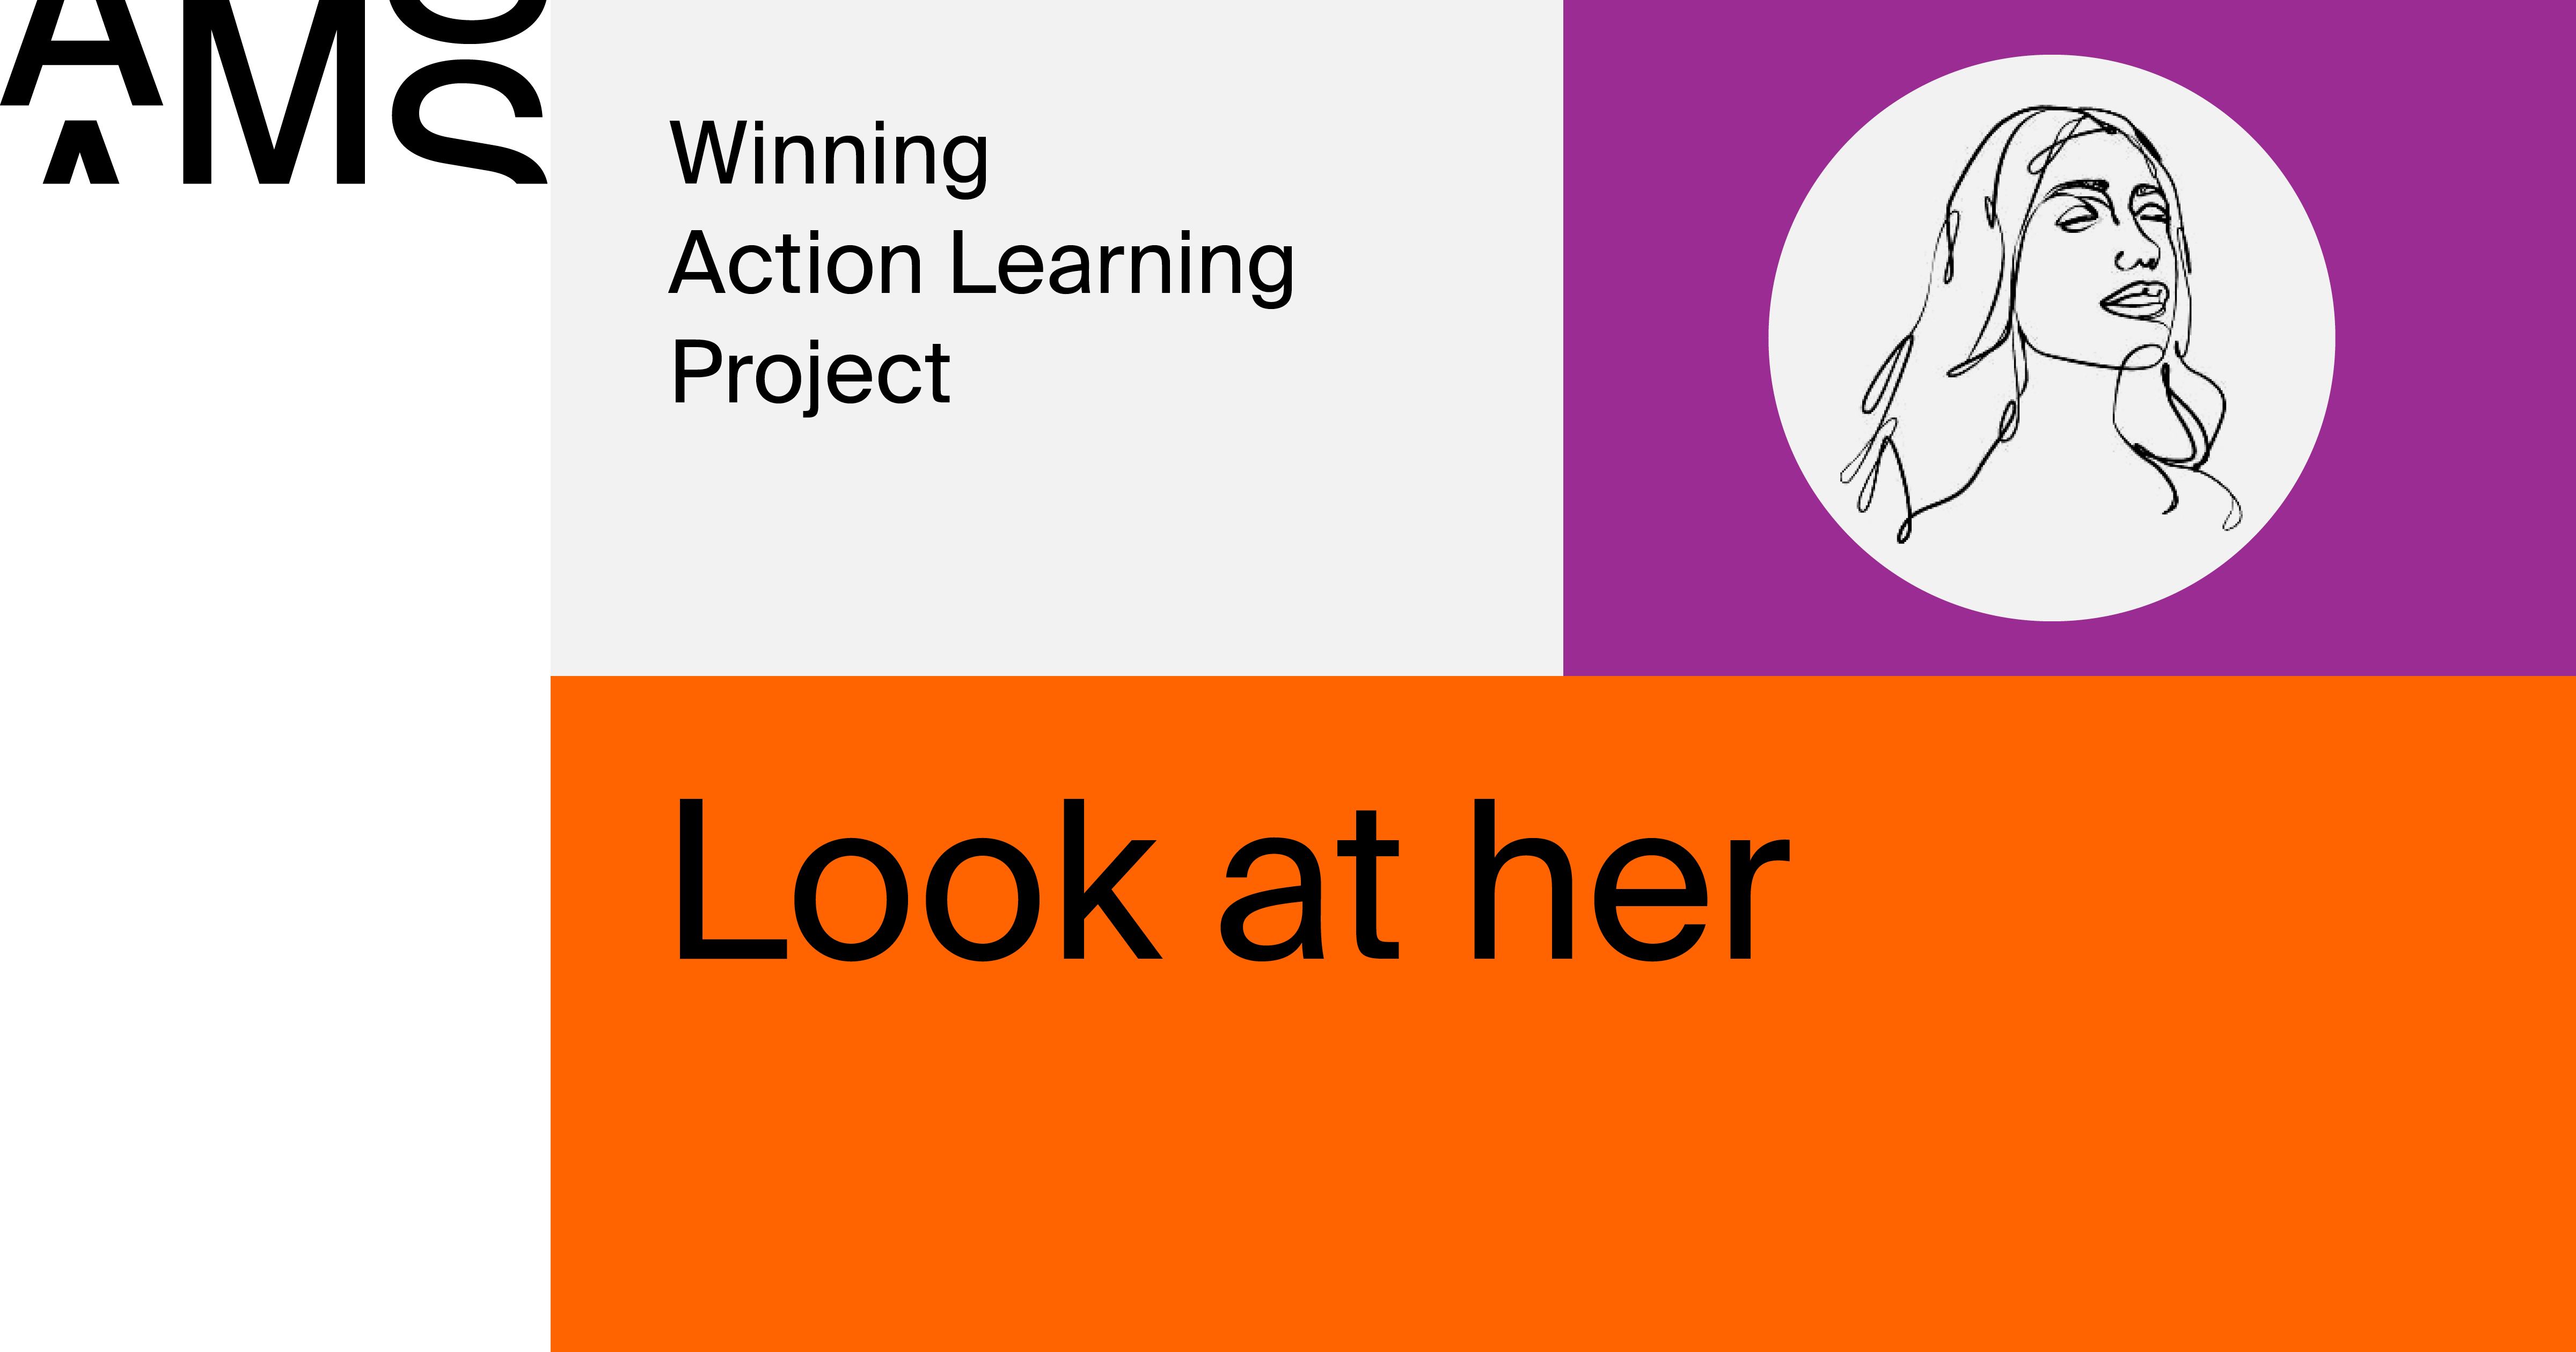 AMS_FTM_Action Learning Project_D